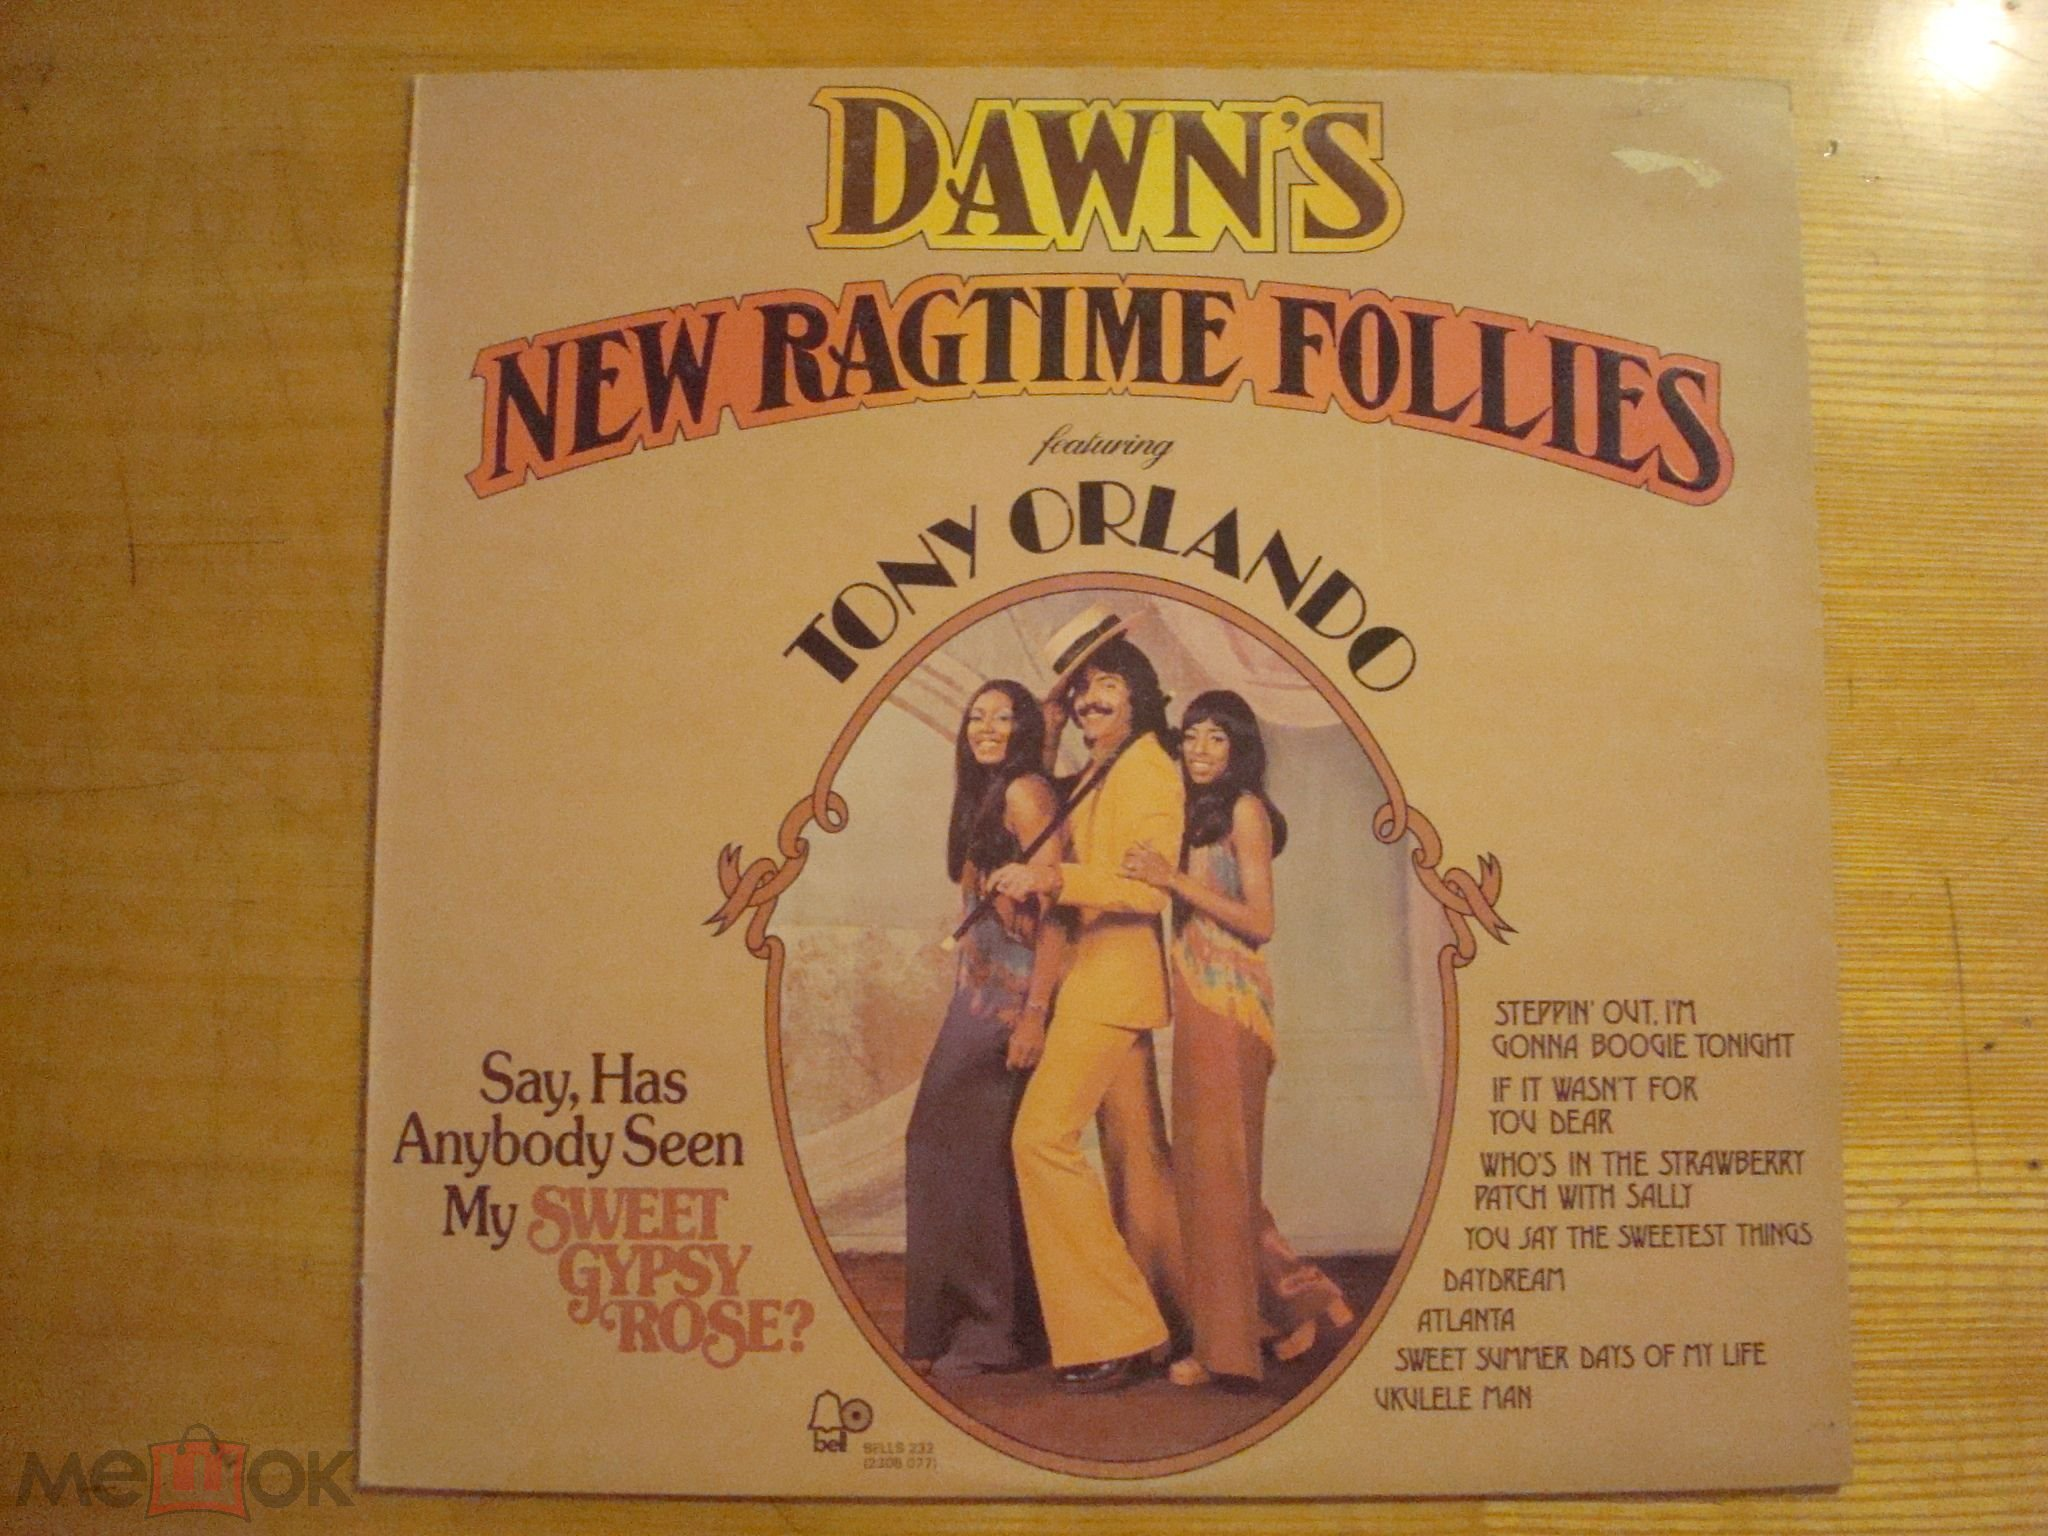 DAWN'S NEW RAGTIME FOLLIES featuring Tony Orlando - 1973 Bell / England - NM